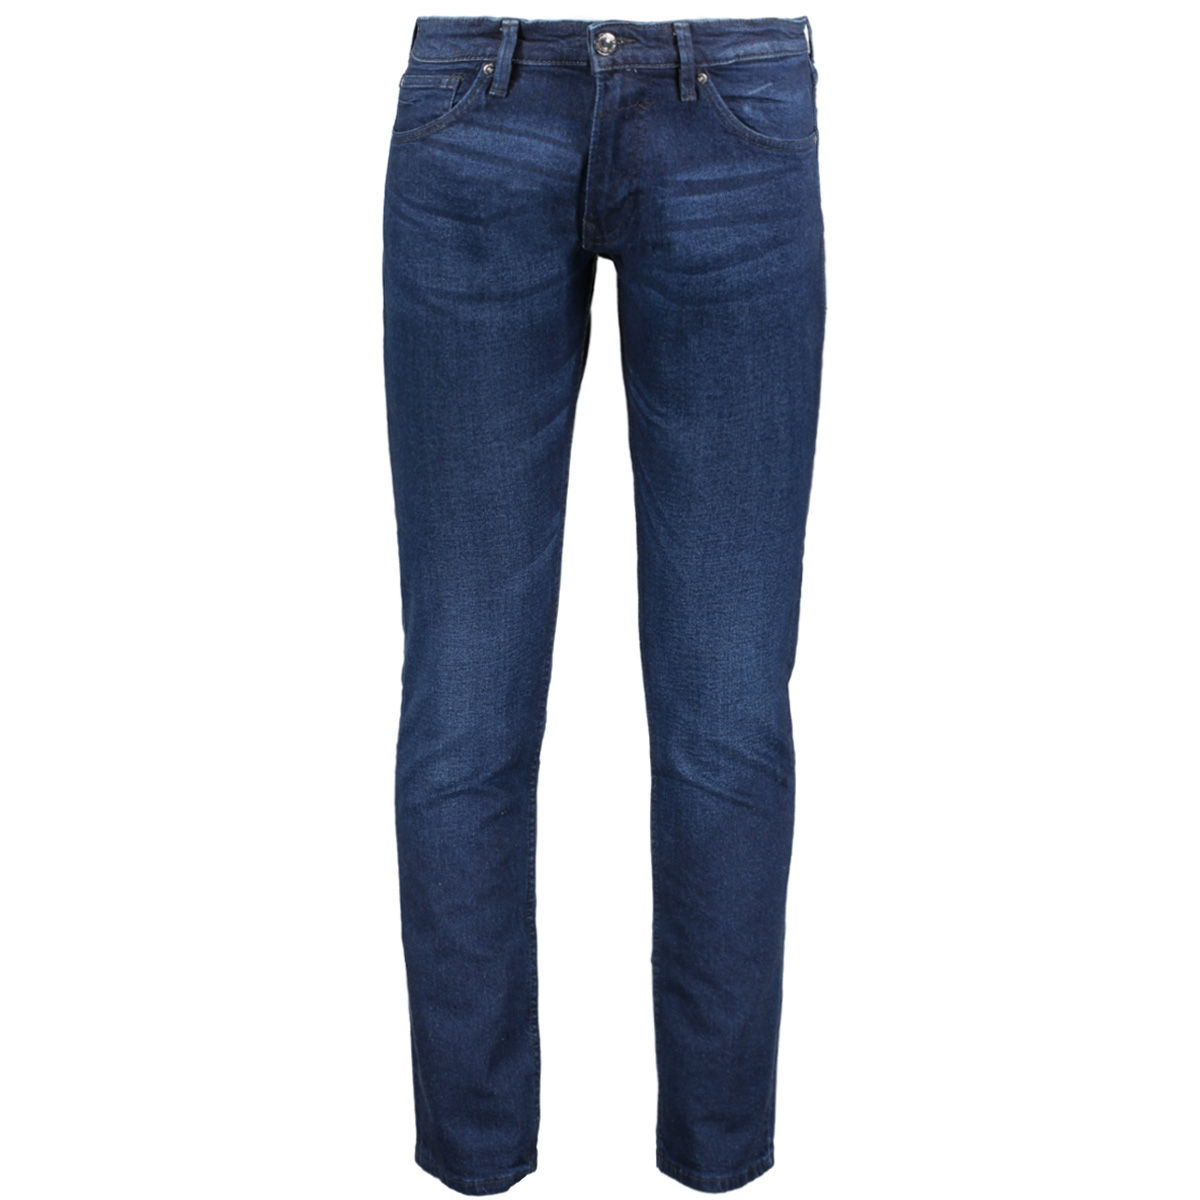 6255153.00.12 tom tailor jeans 1309